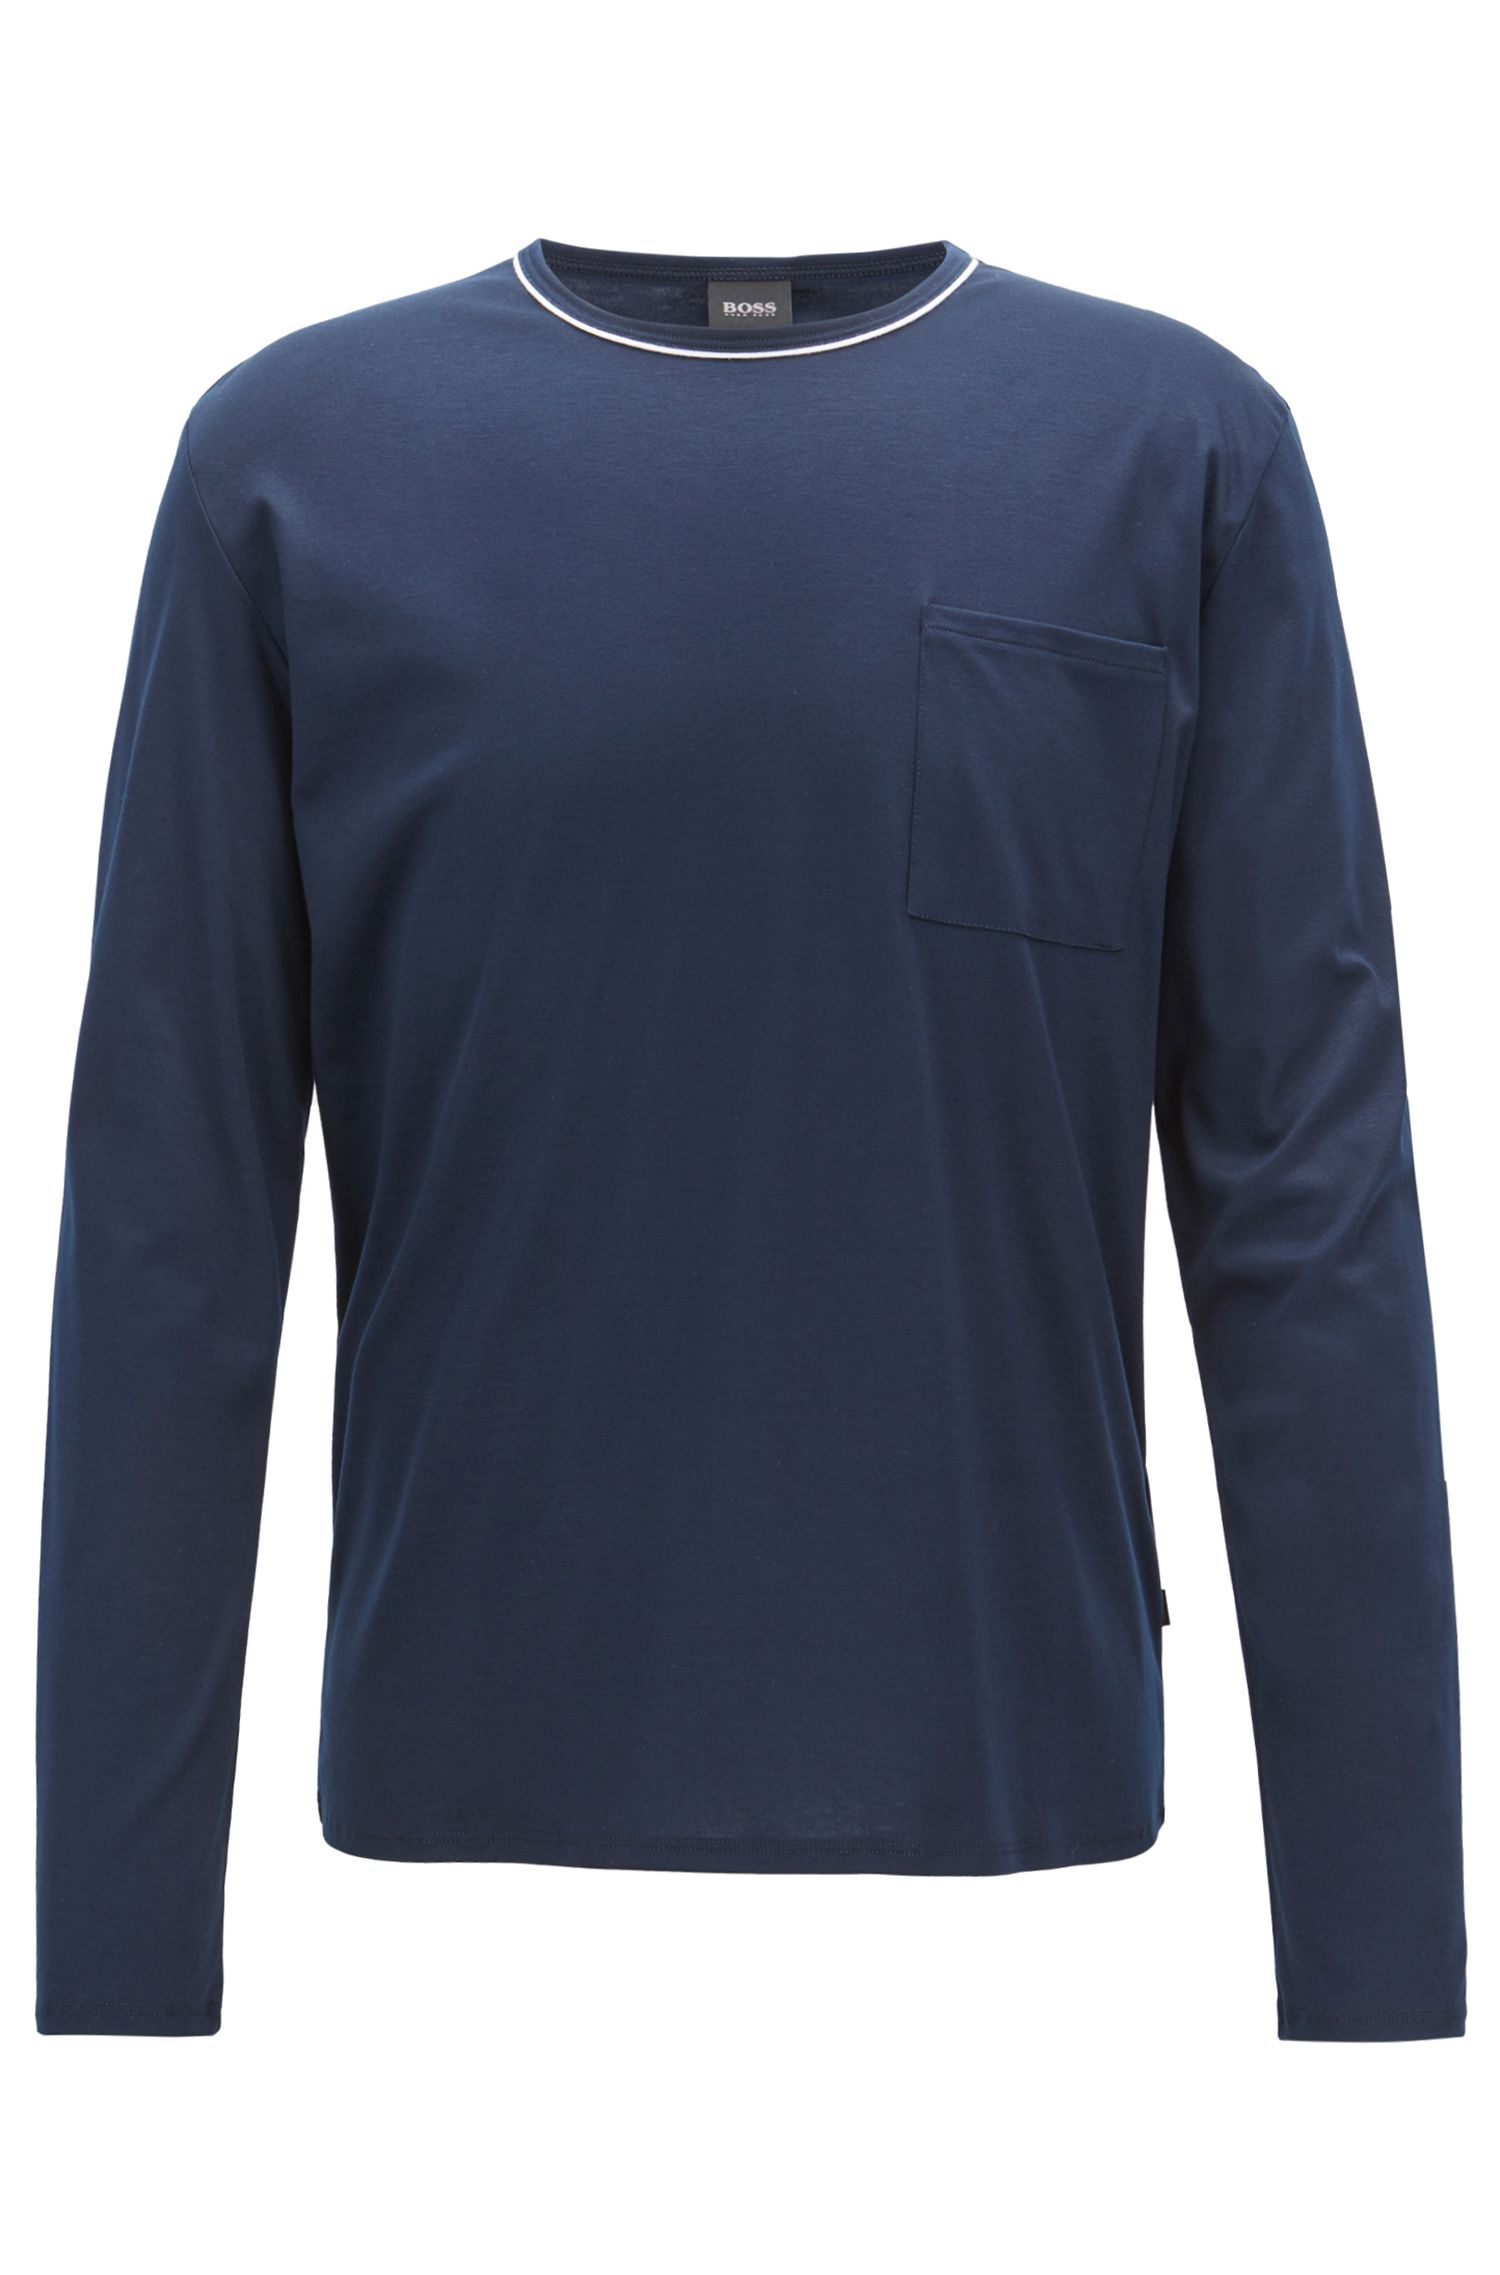 Long-sleeved pyjama top in a cotton-modal blend, Dark Blue